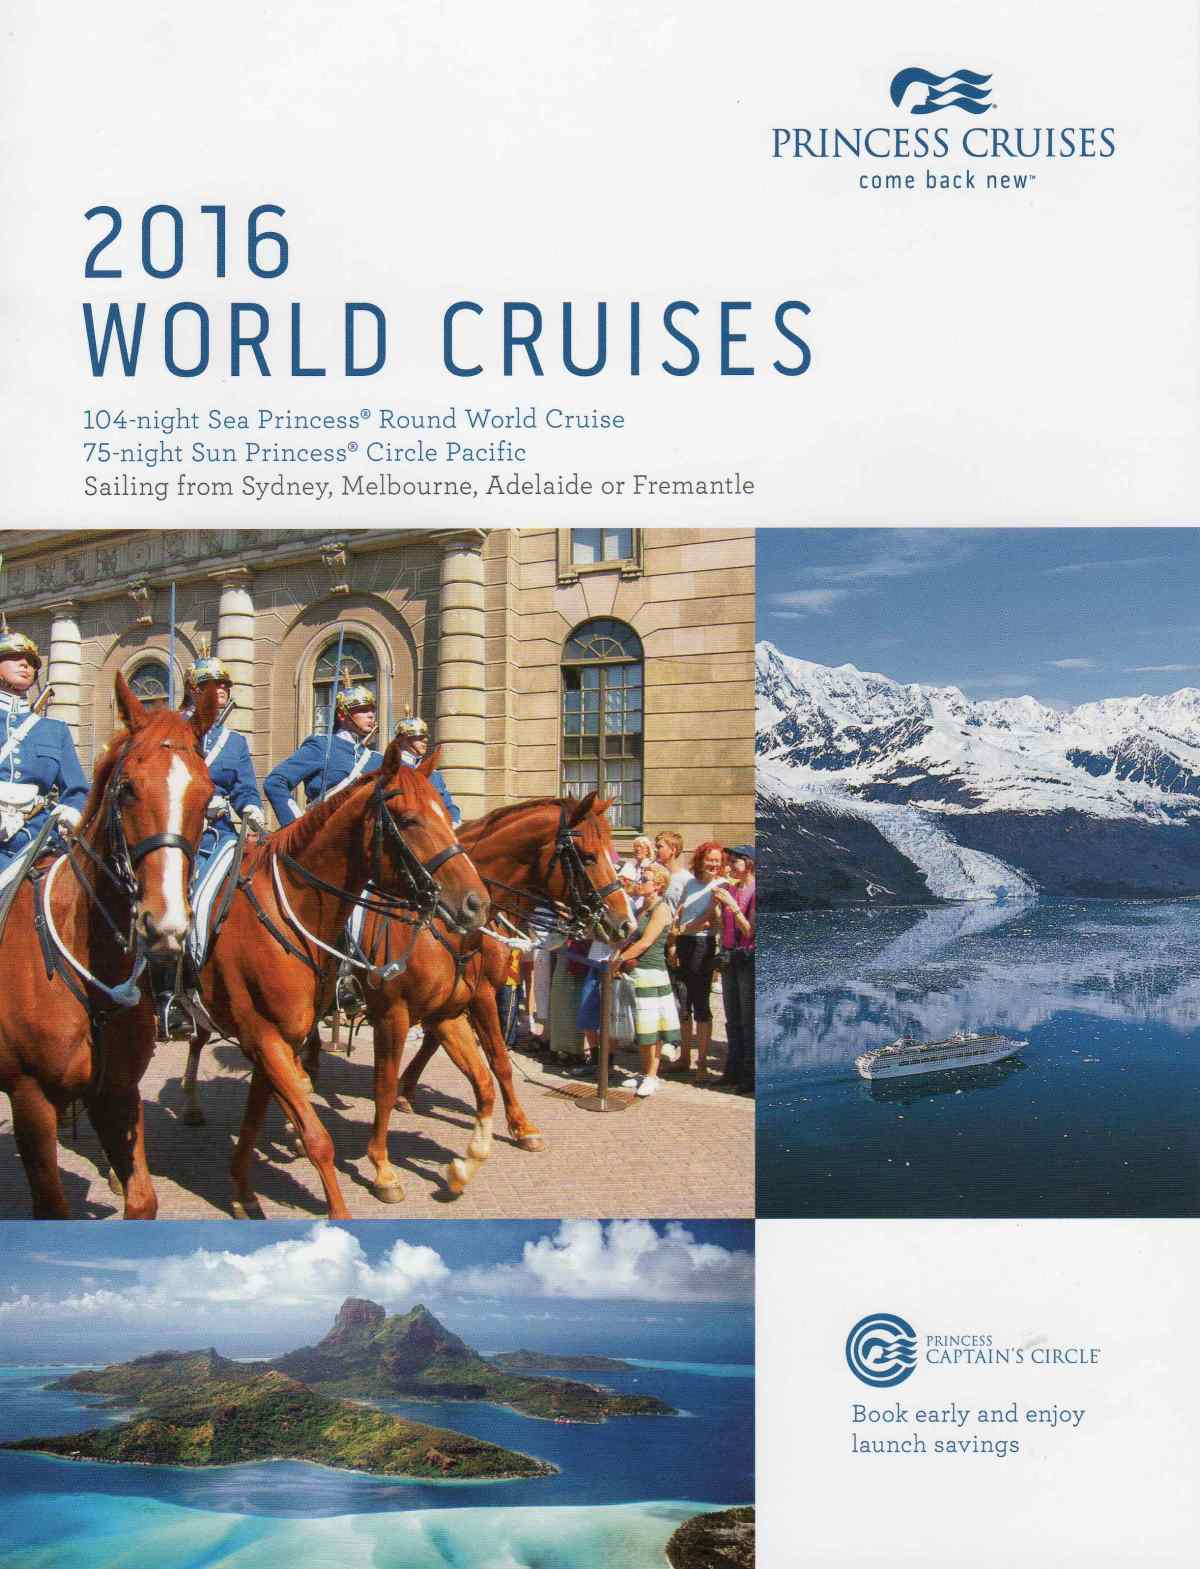 2016 World Cruises